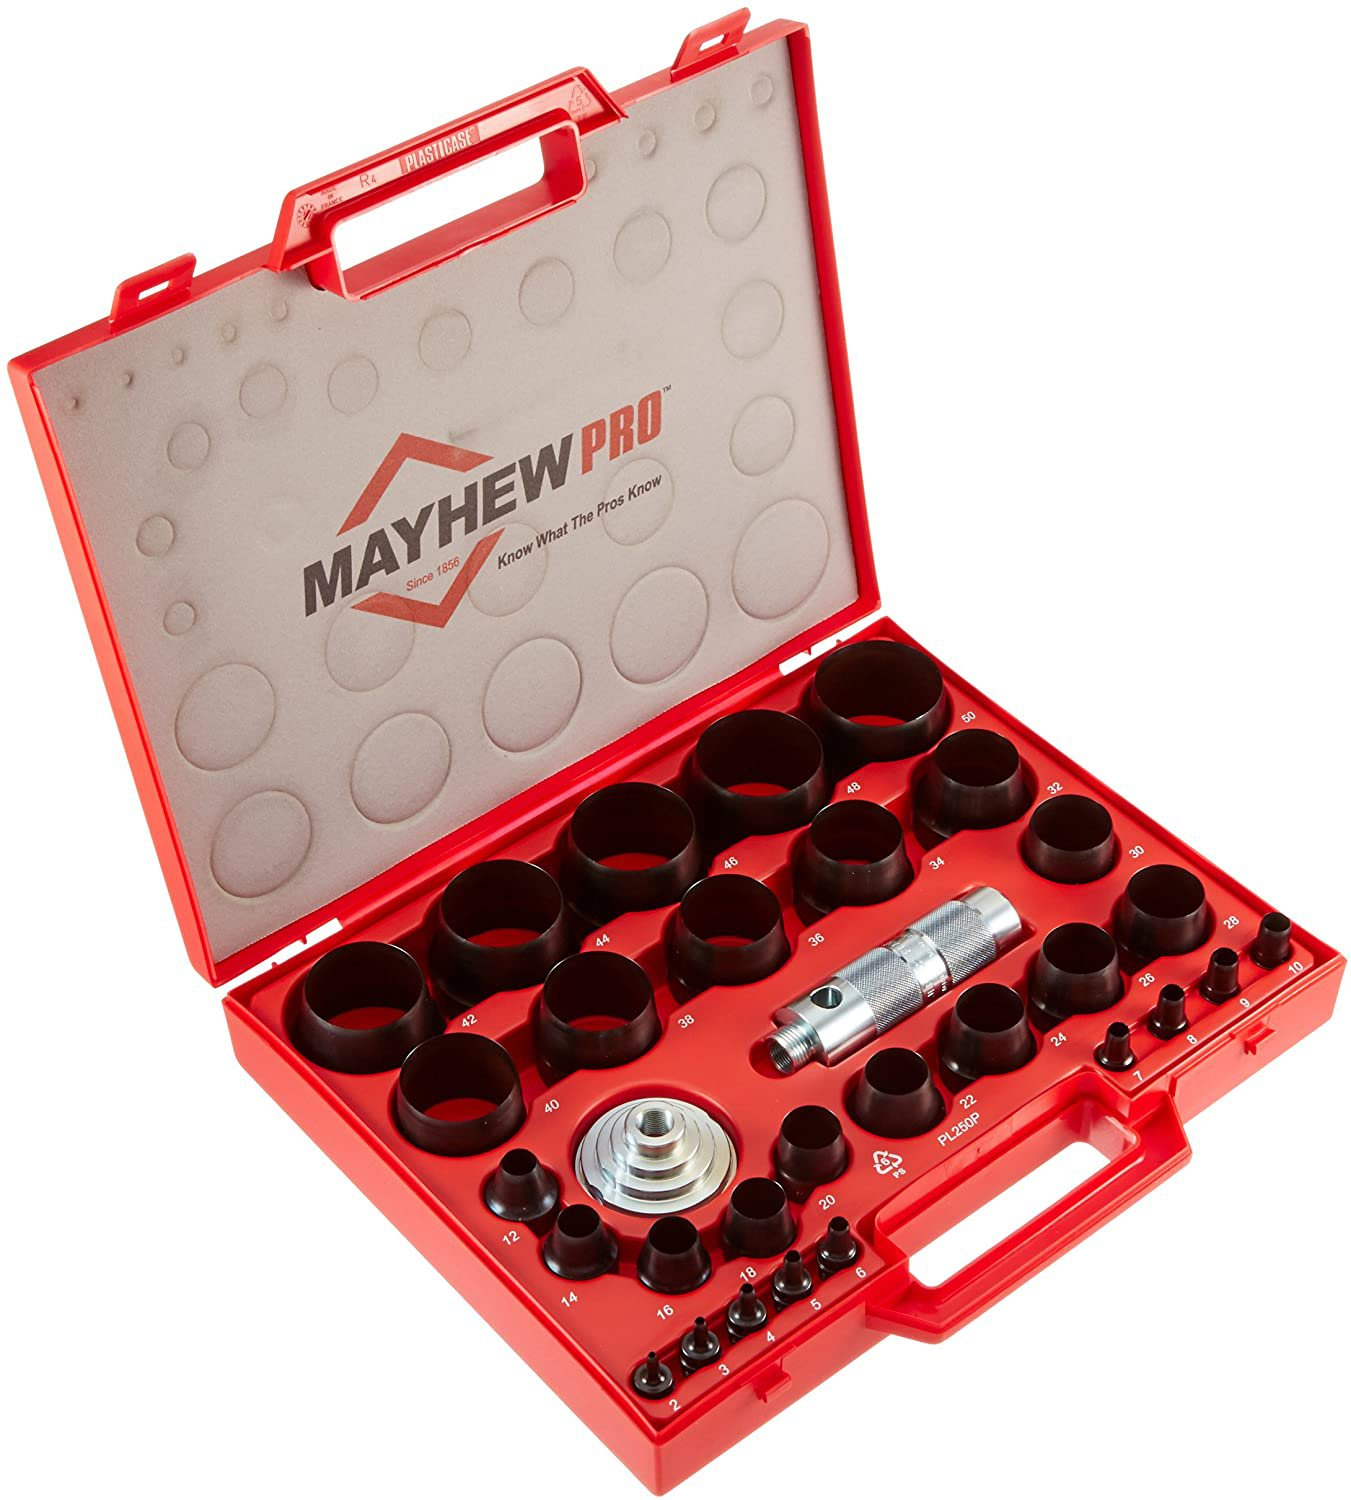 Mayhew Pro 66006 3 mm to 50 mm Metric Hollow Punch Set 3 mm to 50 mm Metric